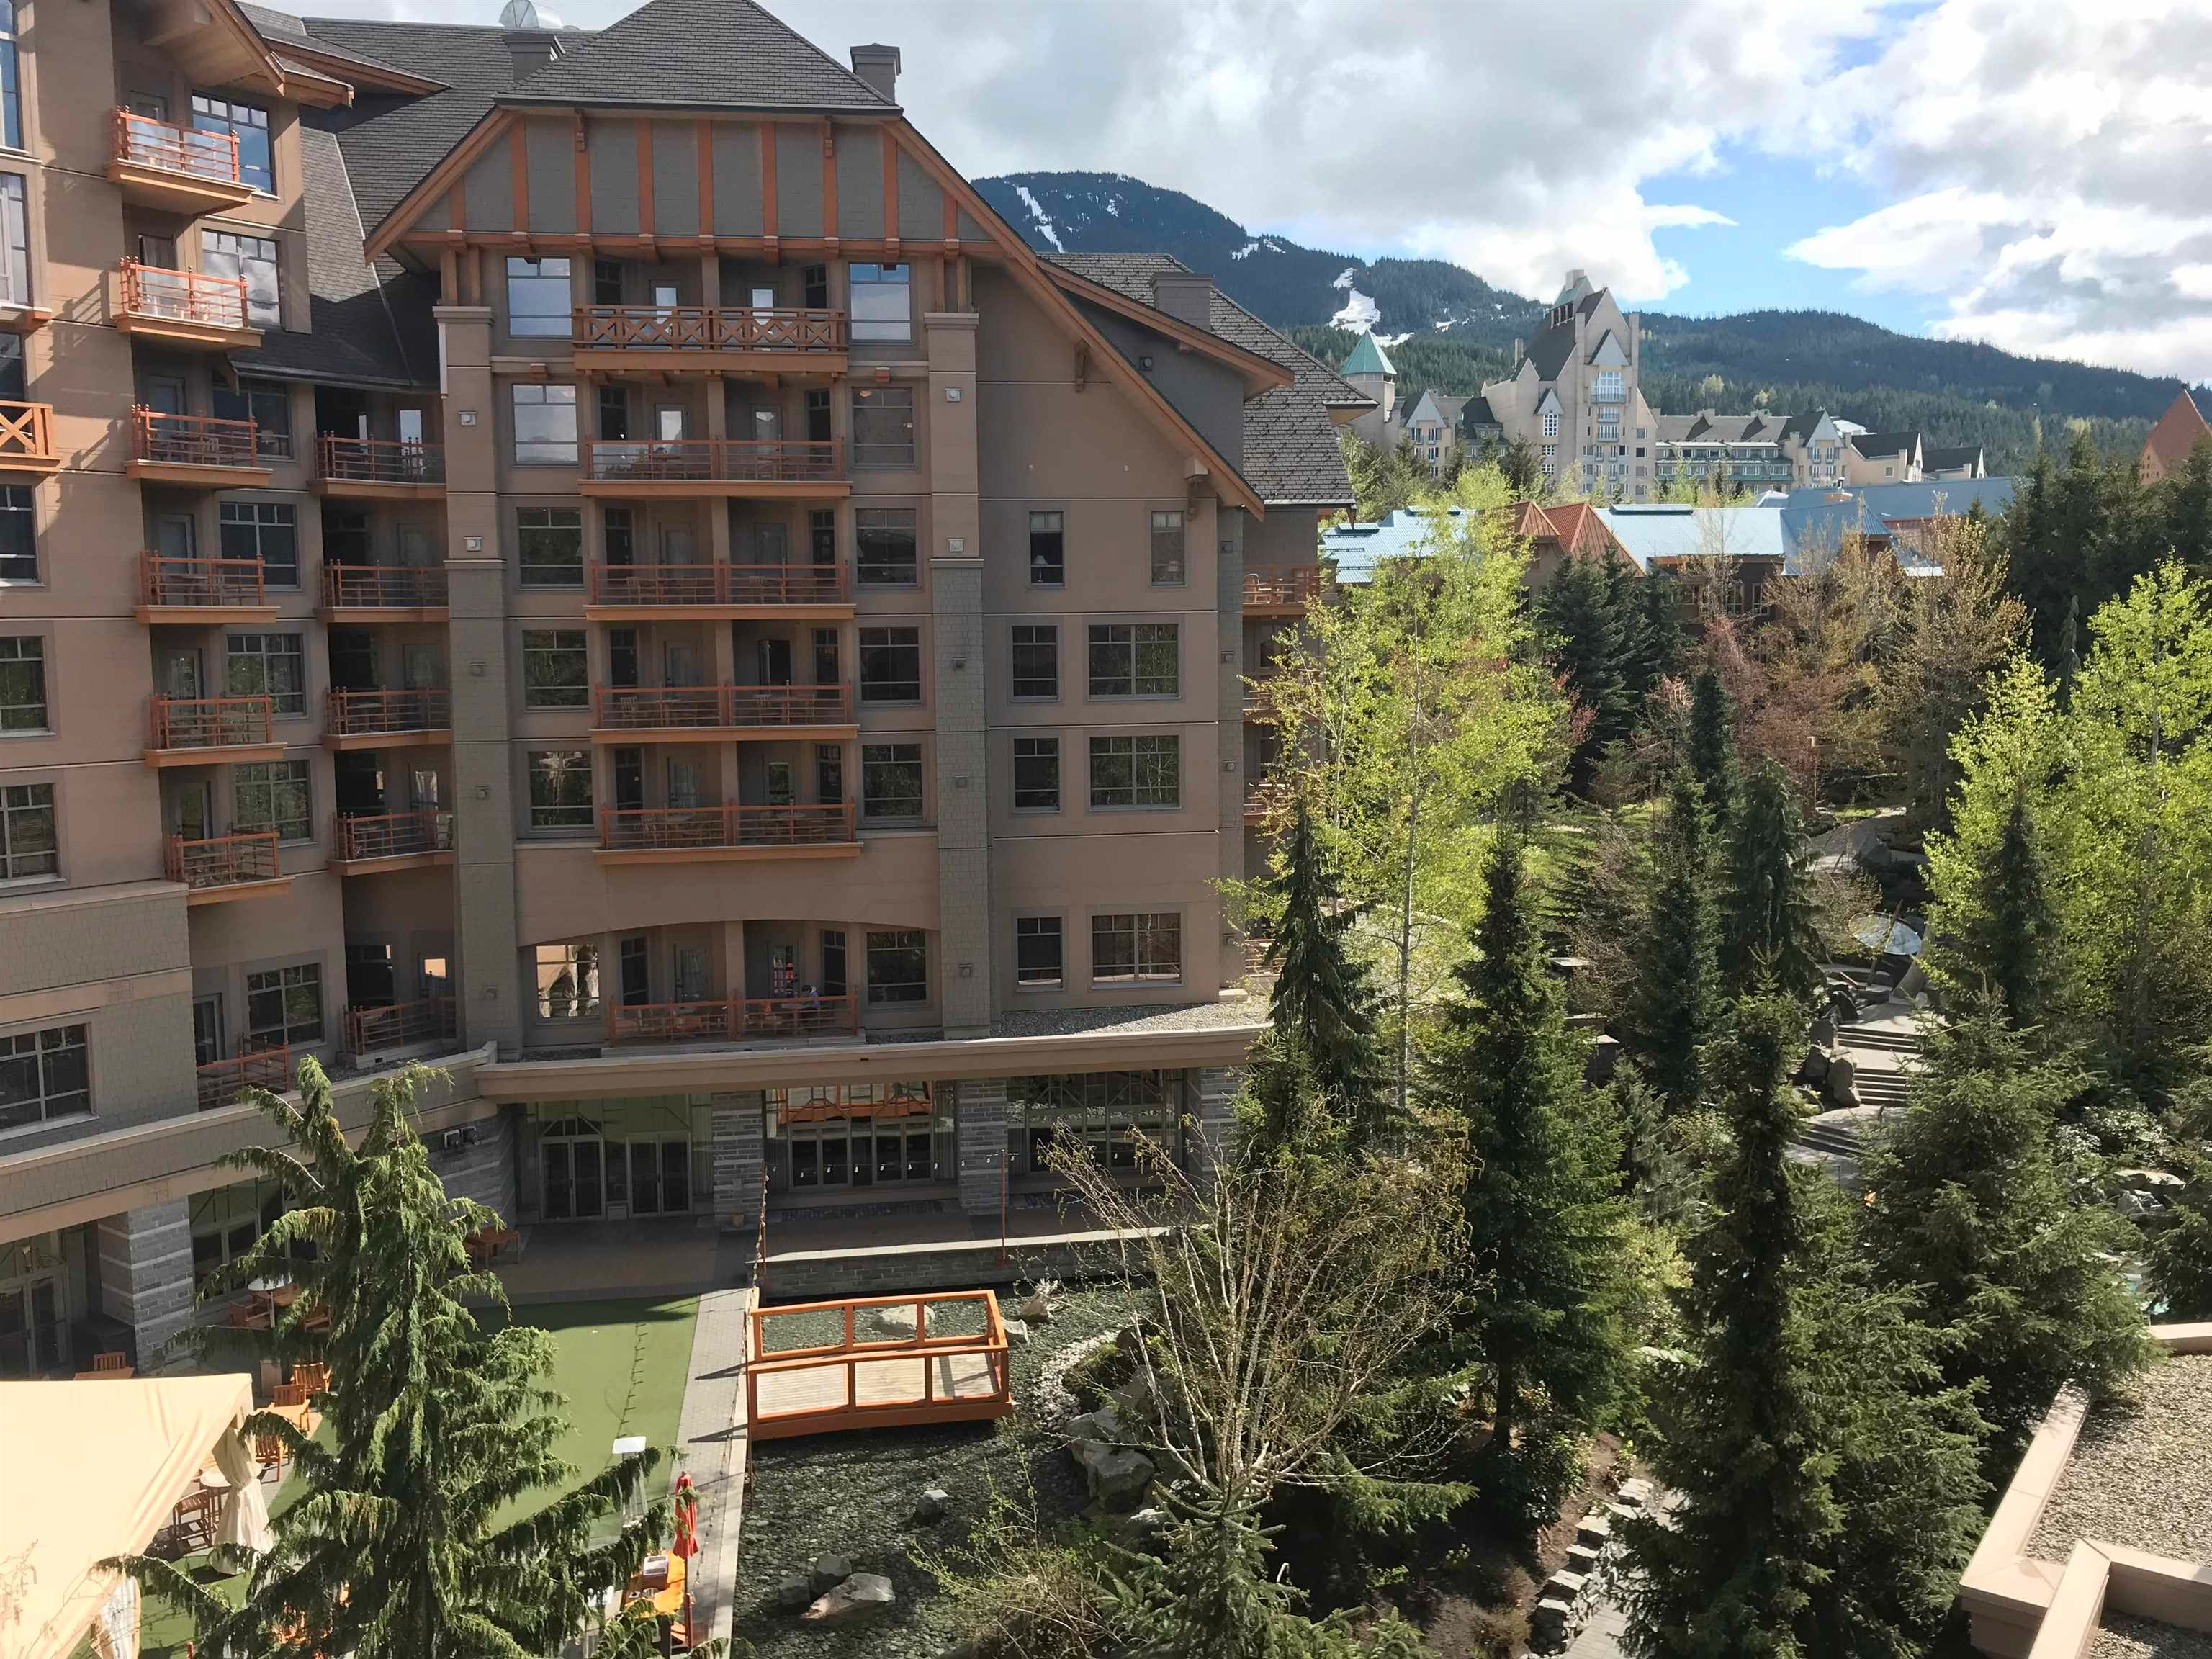 Main Photo: 354 4591 BLACKCOMB Way in Whistler: Benchlands Condo for sale : MLS®# R2620739